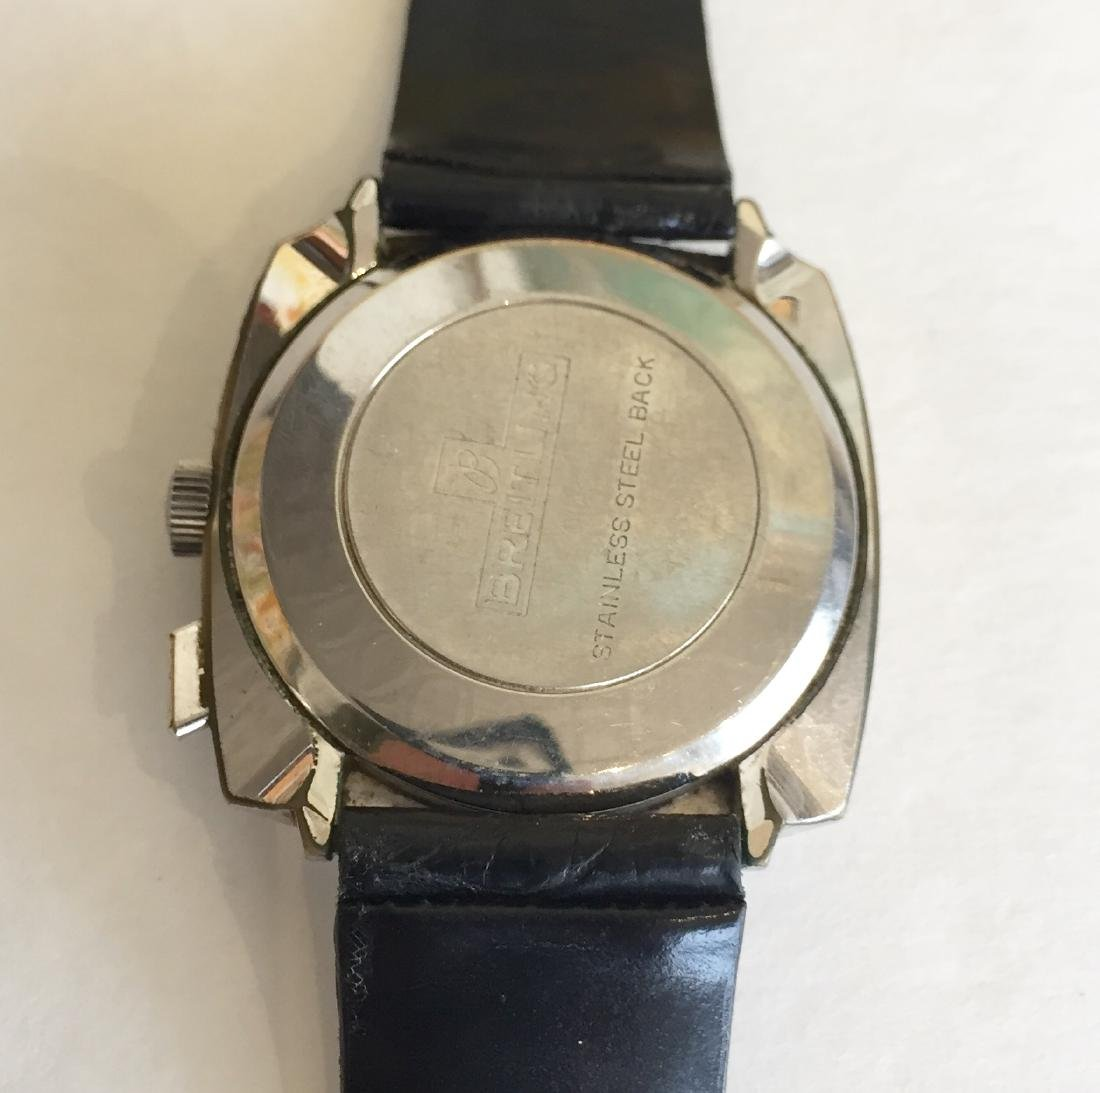 Vintage Breitling 2006/33 Top Time Watch - 5